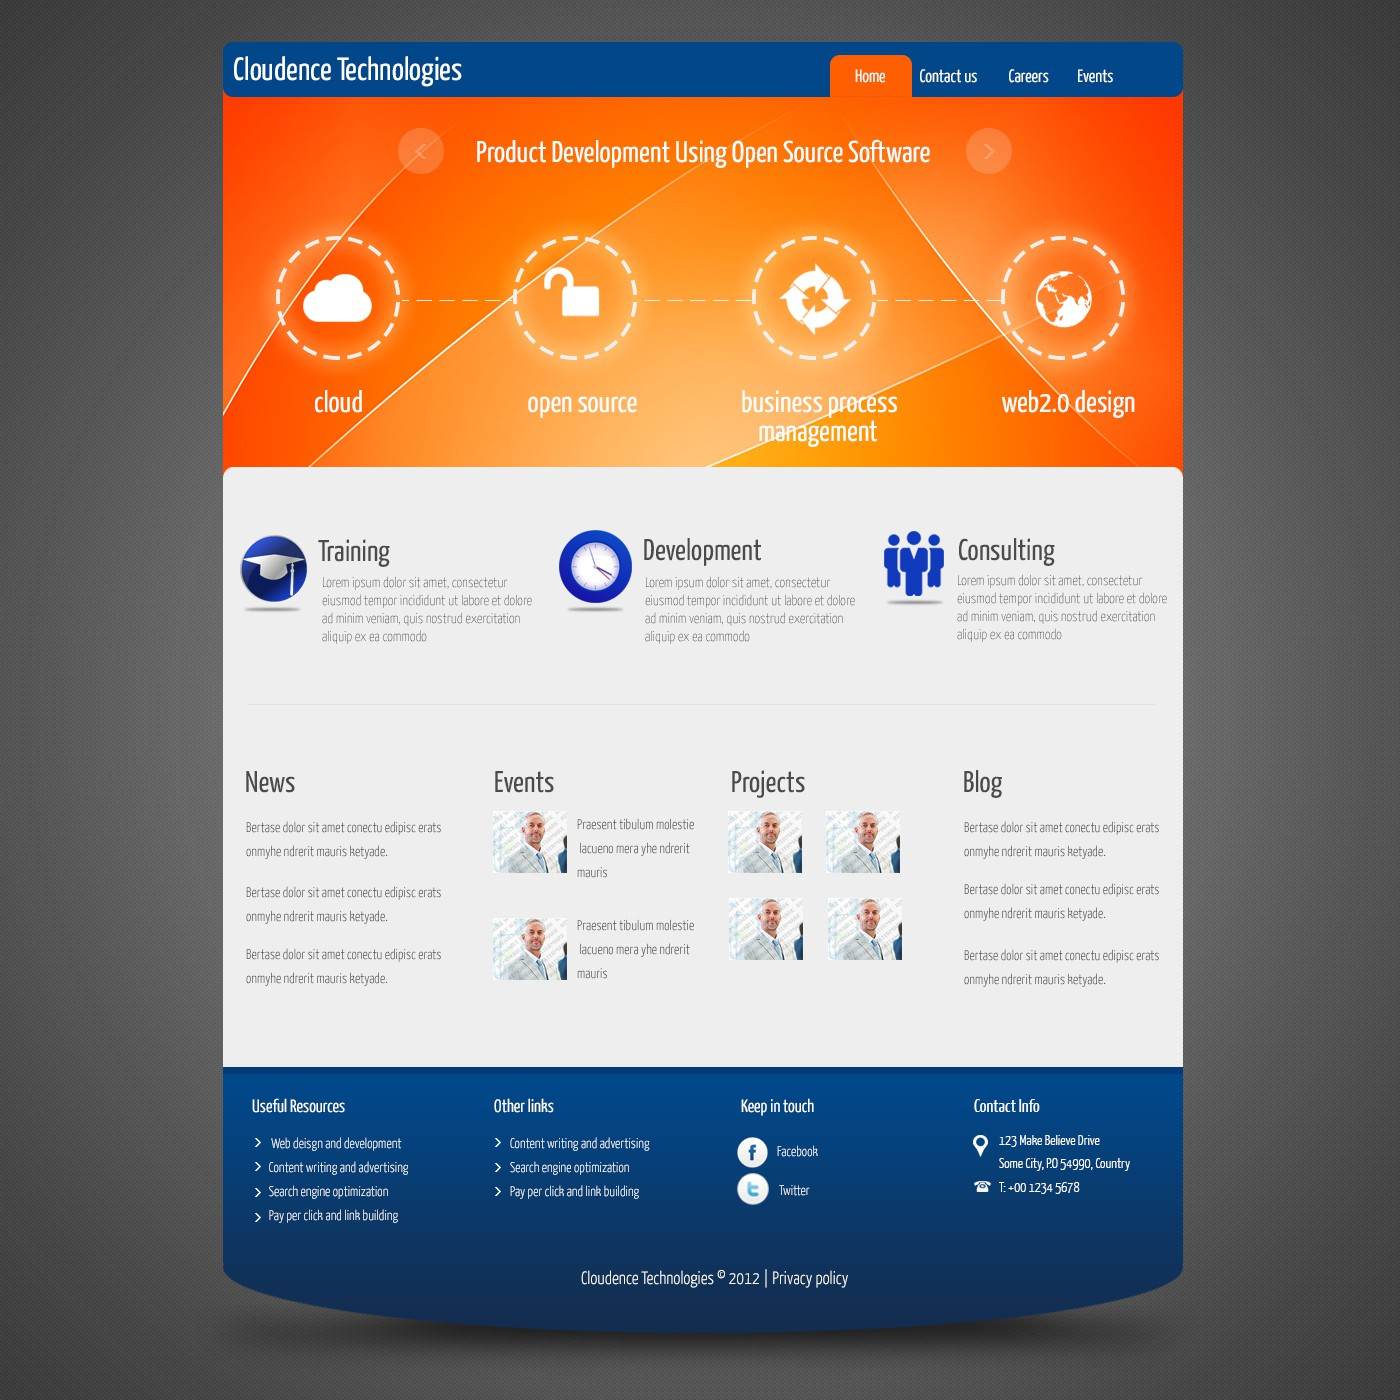 Help cloudence technologies Inc (www.cloudencetech.com) with a new website design